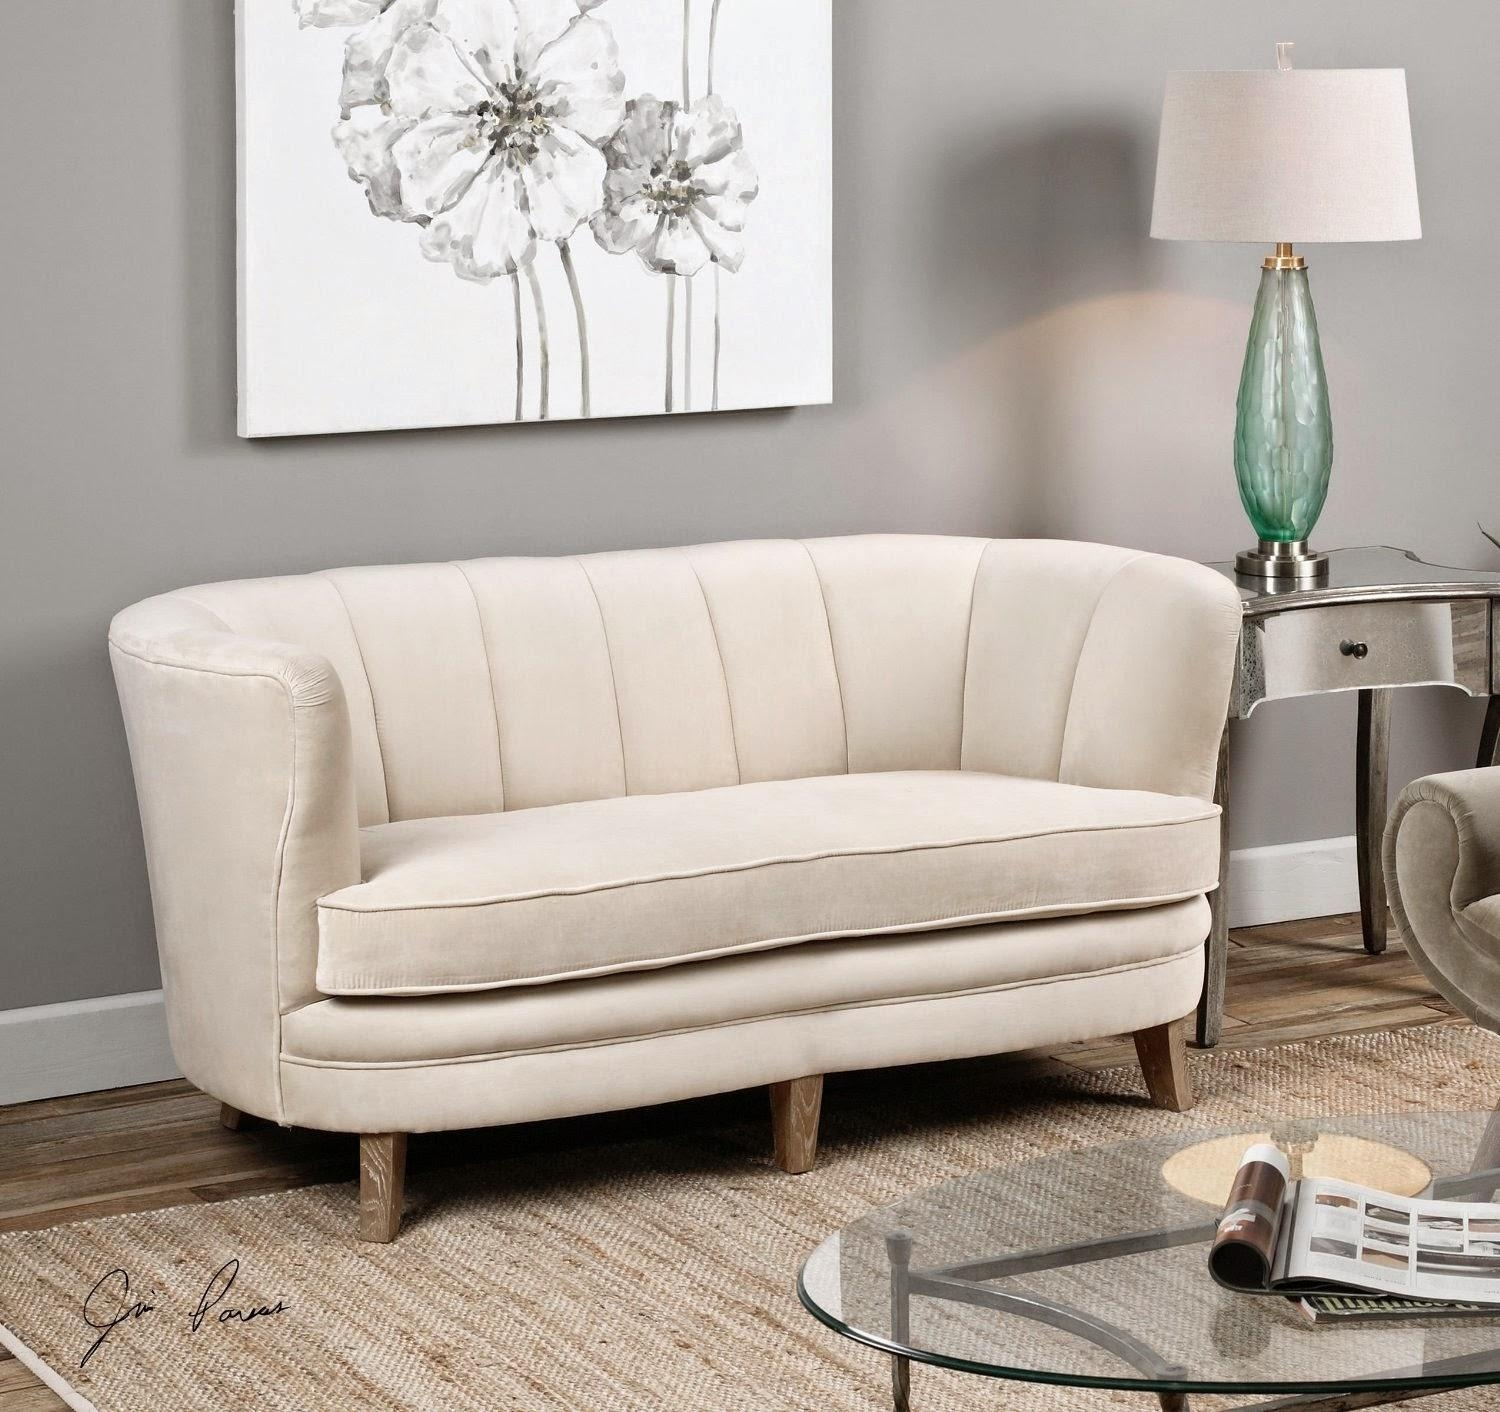 Curved Sofa For Small Spaces: 20 Top Inexpensive Sectional Sofas For Small Spaces